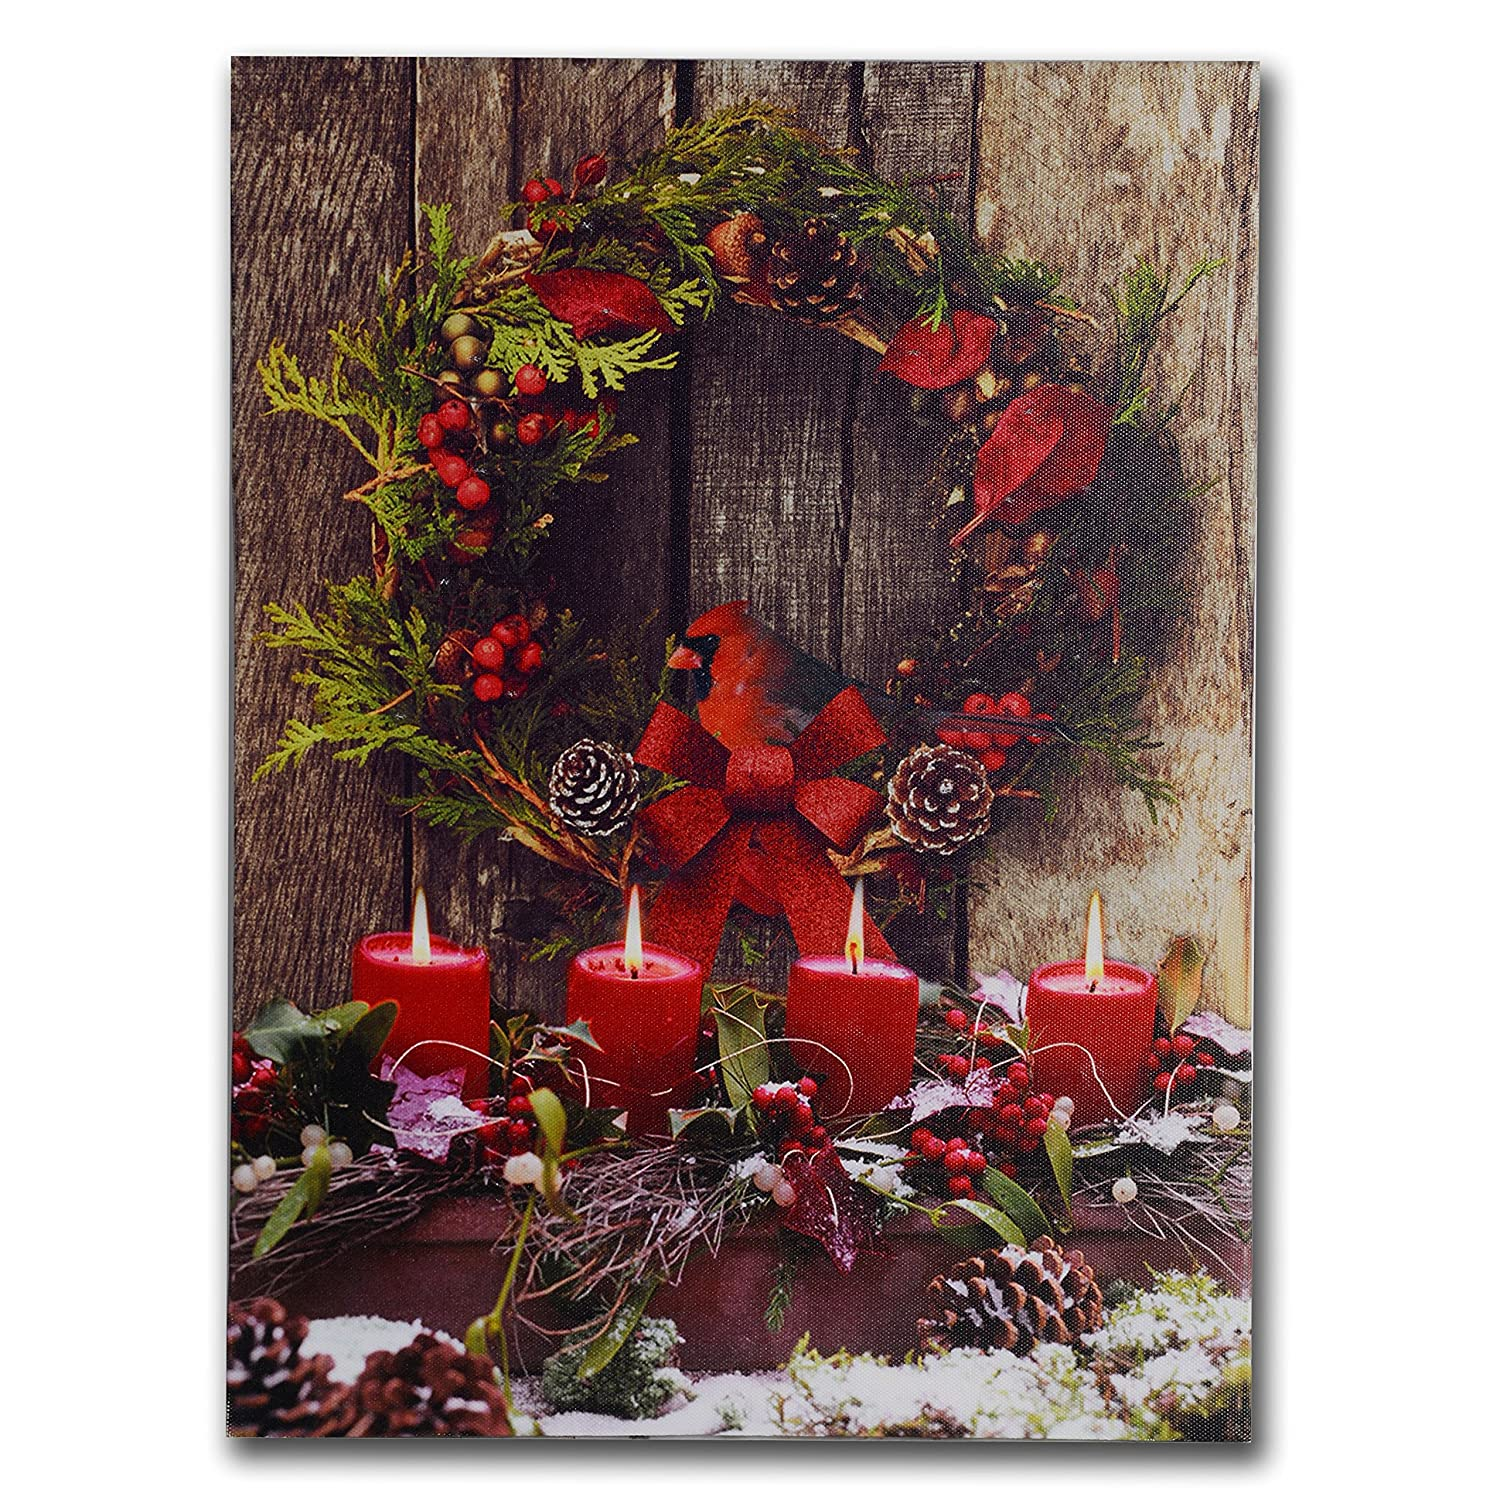 NIKKY HOME Corona de Navidad Home Art Prints de Pared Iluminado Decorativo LED Lienzo Impresiones